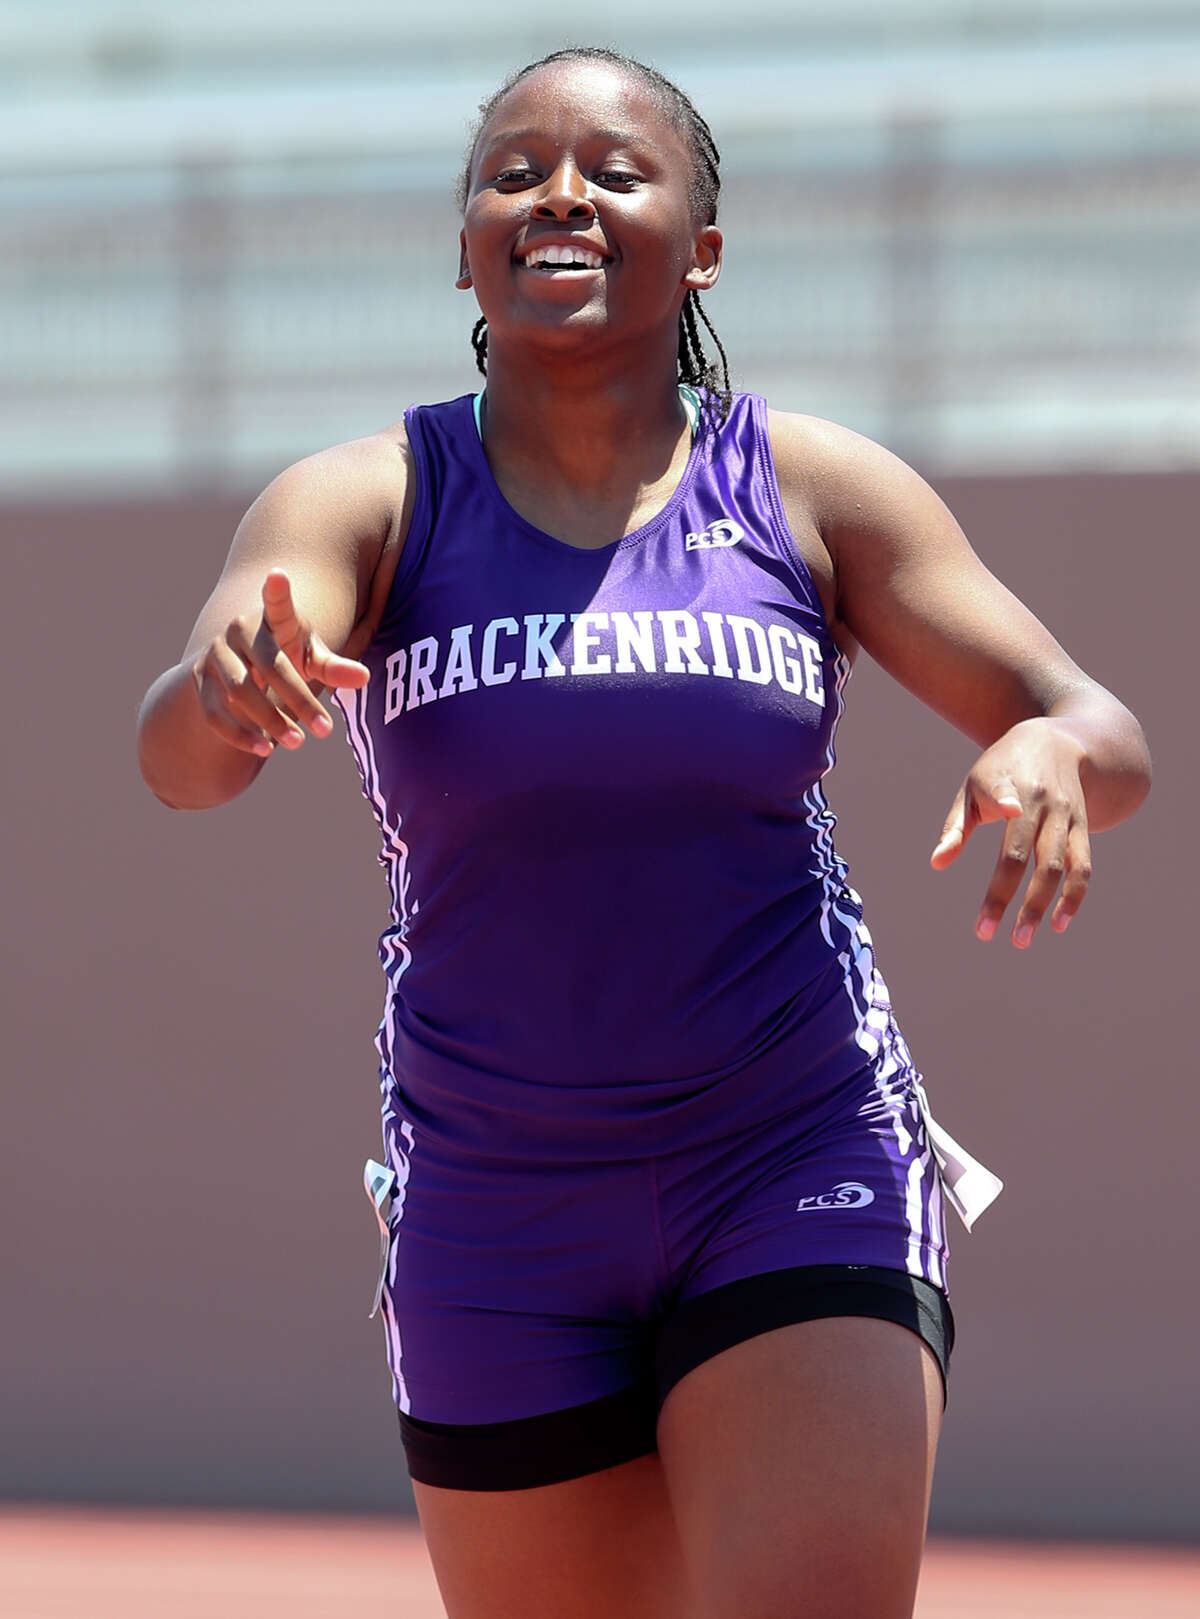 Brackenridge's Tevis Thomas reacts after winning the 5A 100-meter dash during the Region IV-5A and Region IV-6A Track and Field meet at Alamo Stadium on Saturday, May 2, 2015. Thomas won the event with a time of 12.16 seconds. She also qualified for the upcoming State meet with a second place finish in the 200-meter dash. MARVIN PFEIFFER/ mpfeiffer@express-news.net